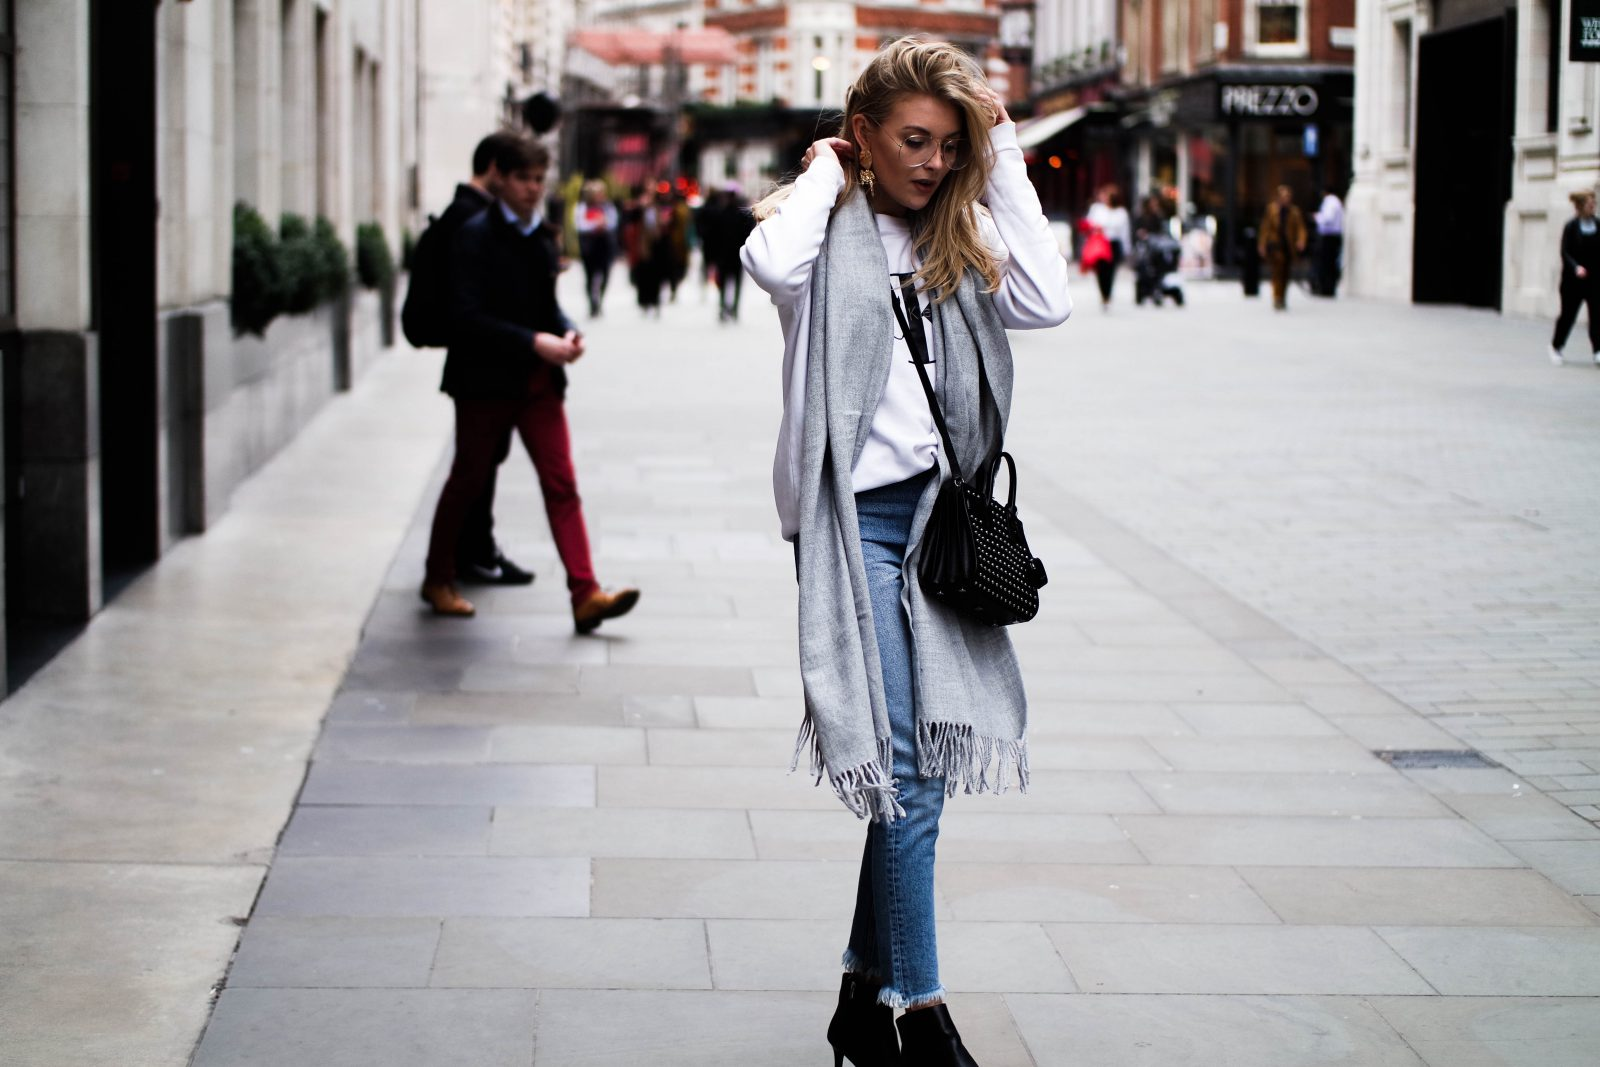 LFW Day 4 Comfy & Casual - London Street Style